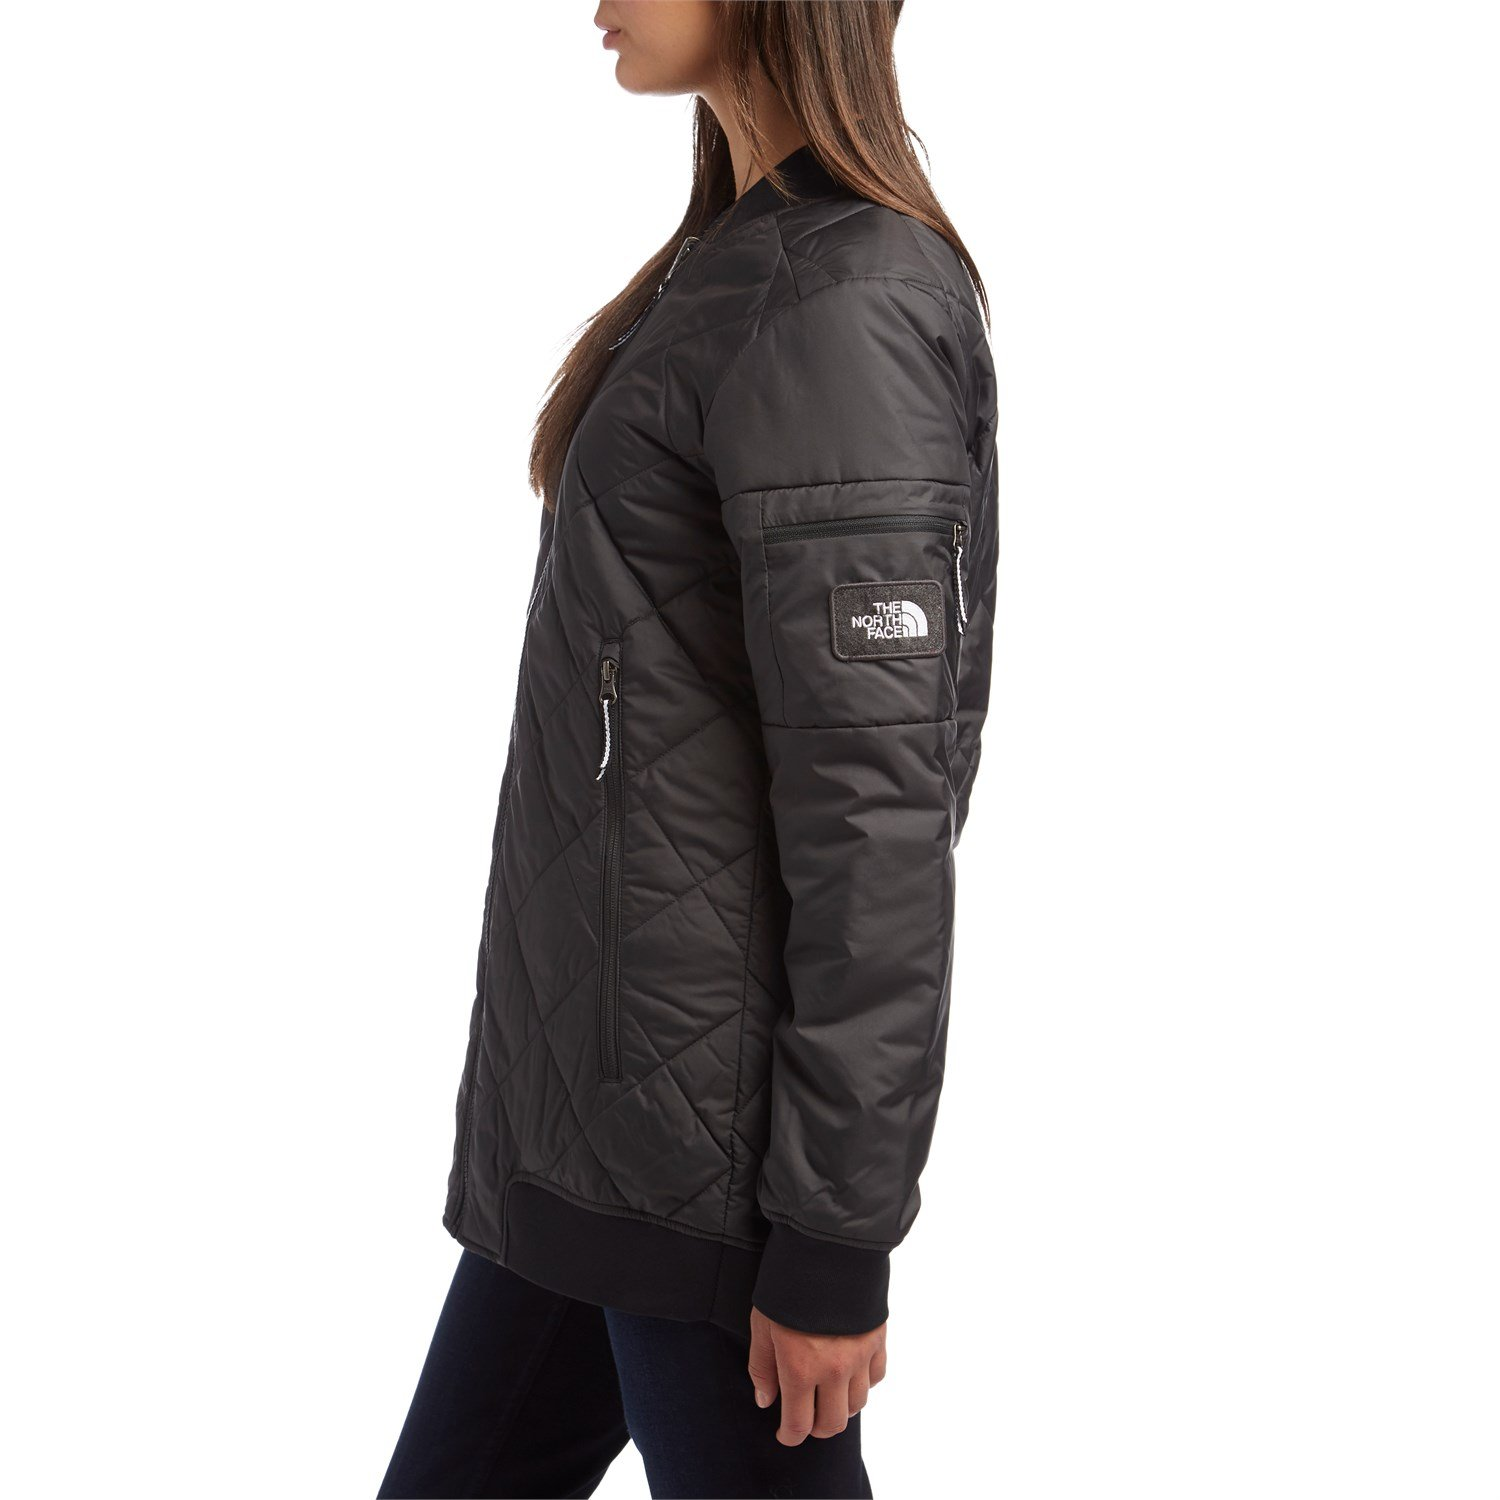 c264502c8 The North Face Jester Bomber Jacket - Women's